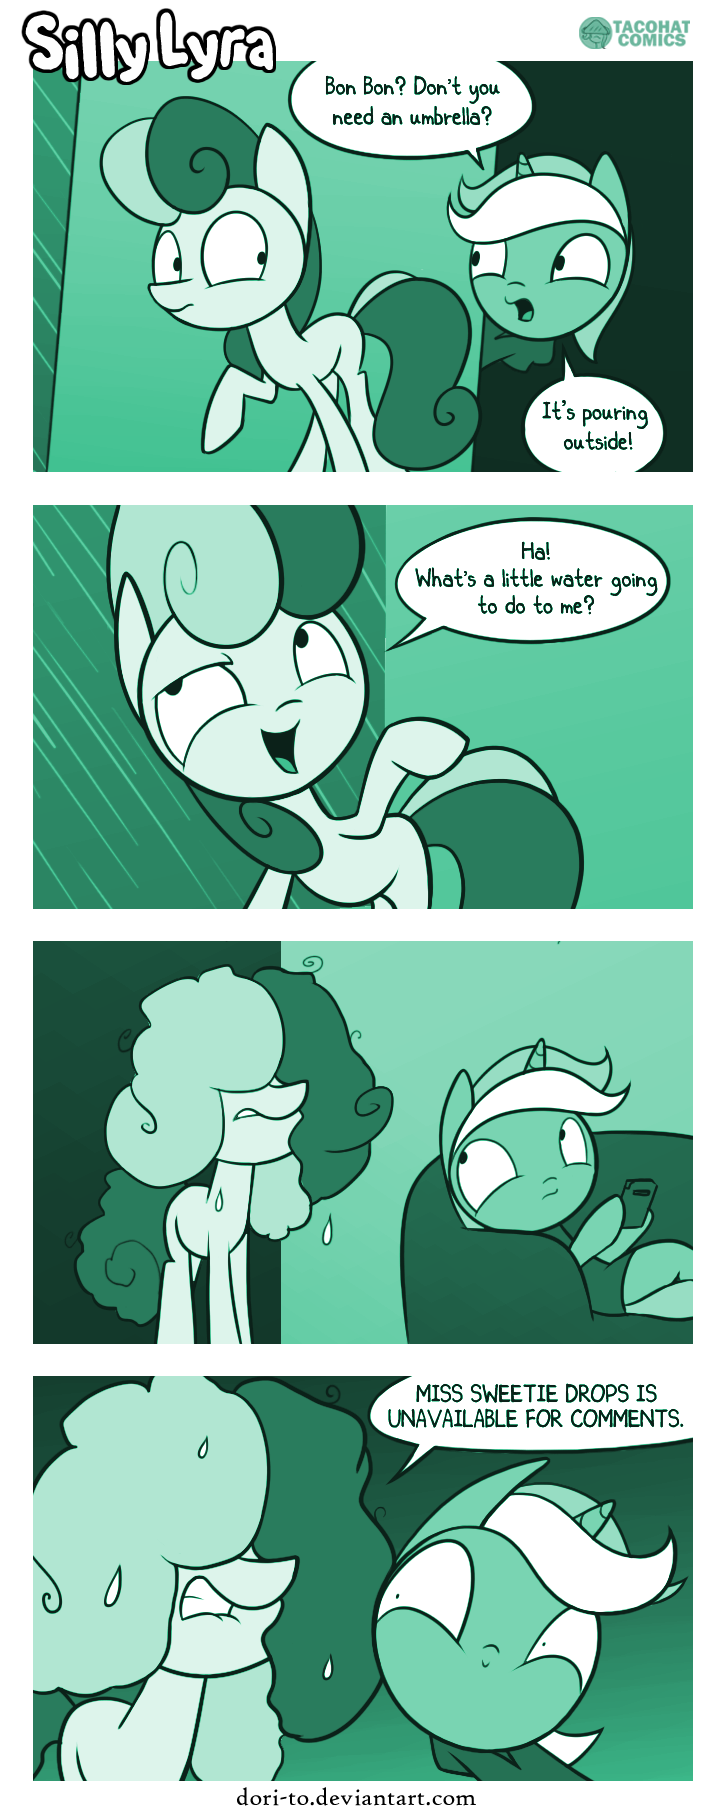 Comic strip #38 - Umbrella